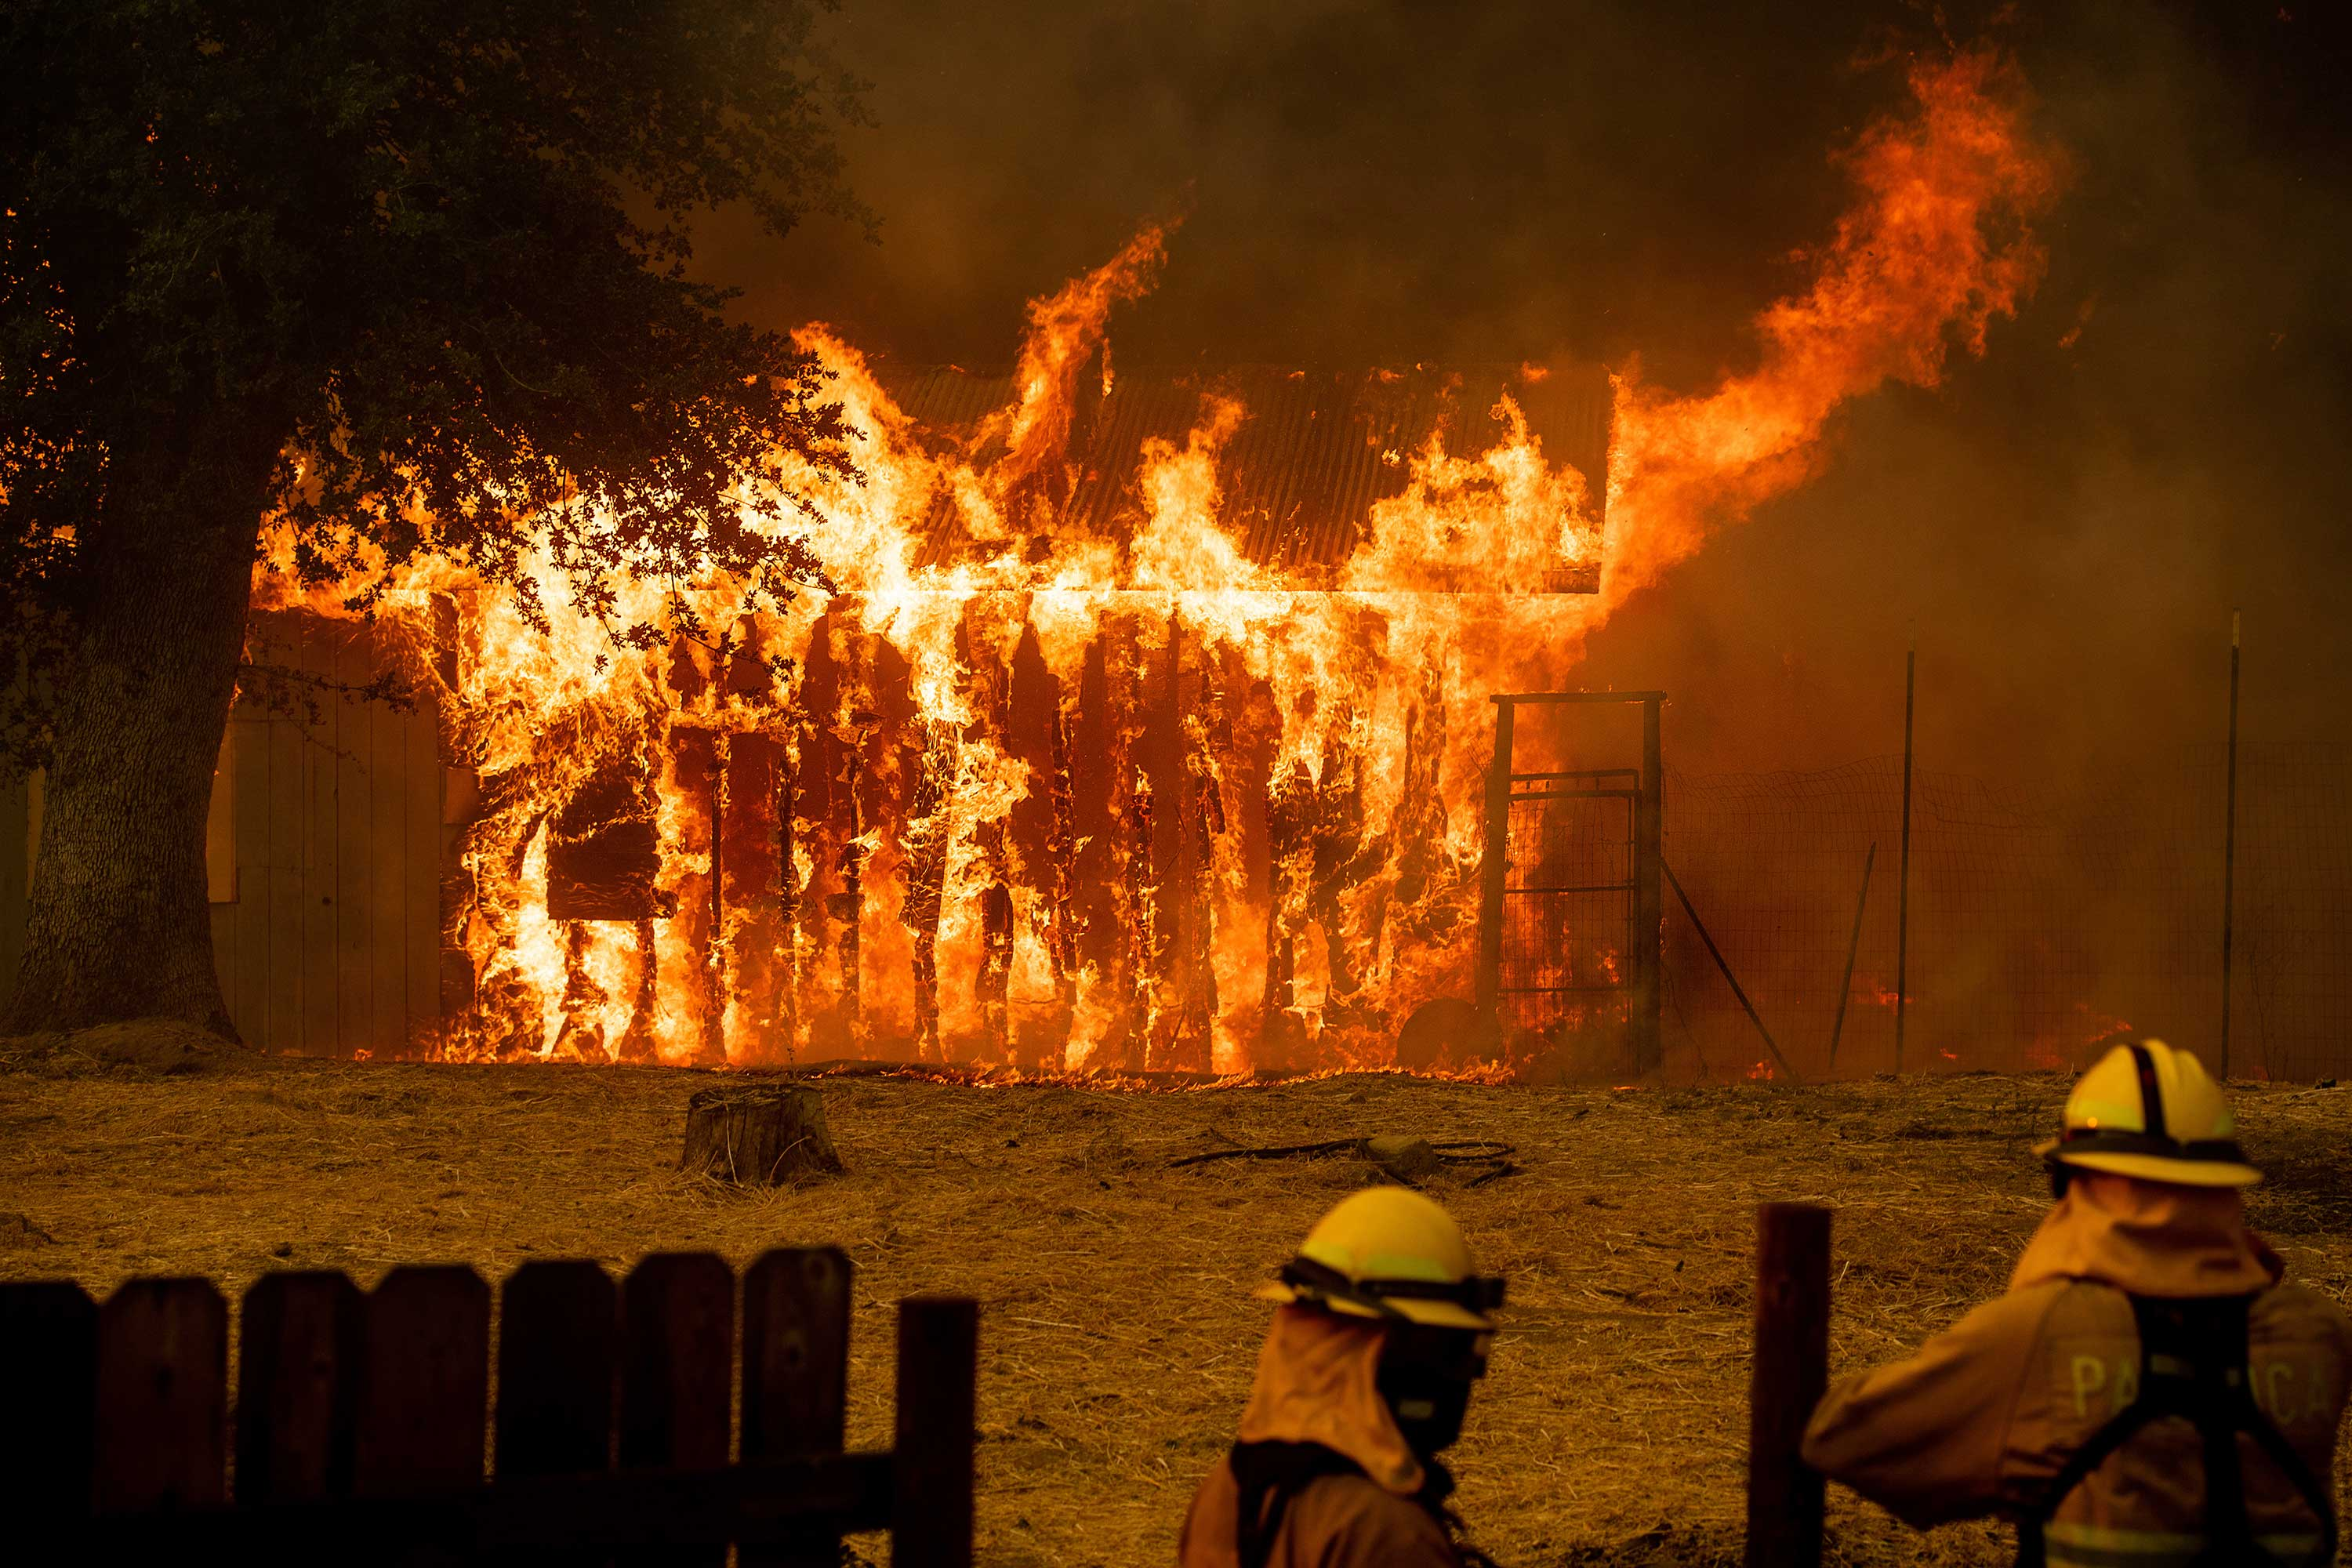 "<div class=""meta image-caption""><div class=""origin-logo origin-image none""><span>none</span></div><span class=""caption-text"">Firefighters monitor a burning outbuilding to ensure flames don't spread as the River Fire burns in Lakeport, Calif., on Monday, July 30. (Noah Berger/AP Photo)</span></div>"